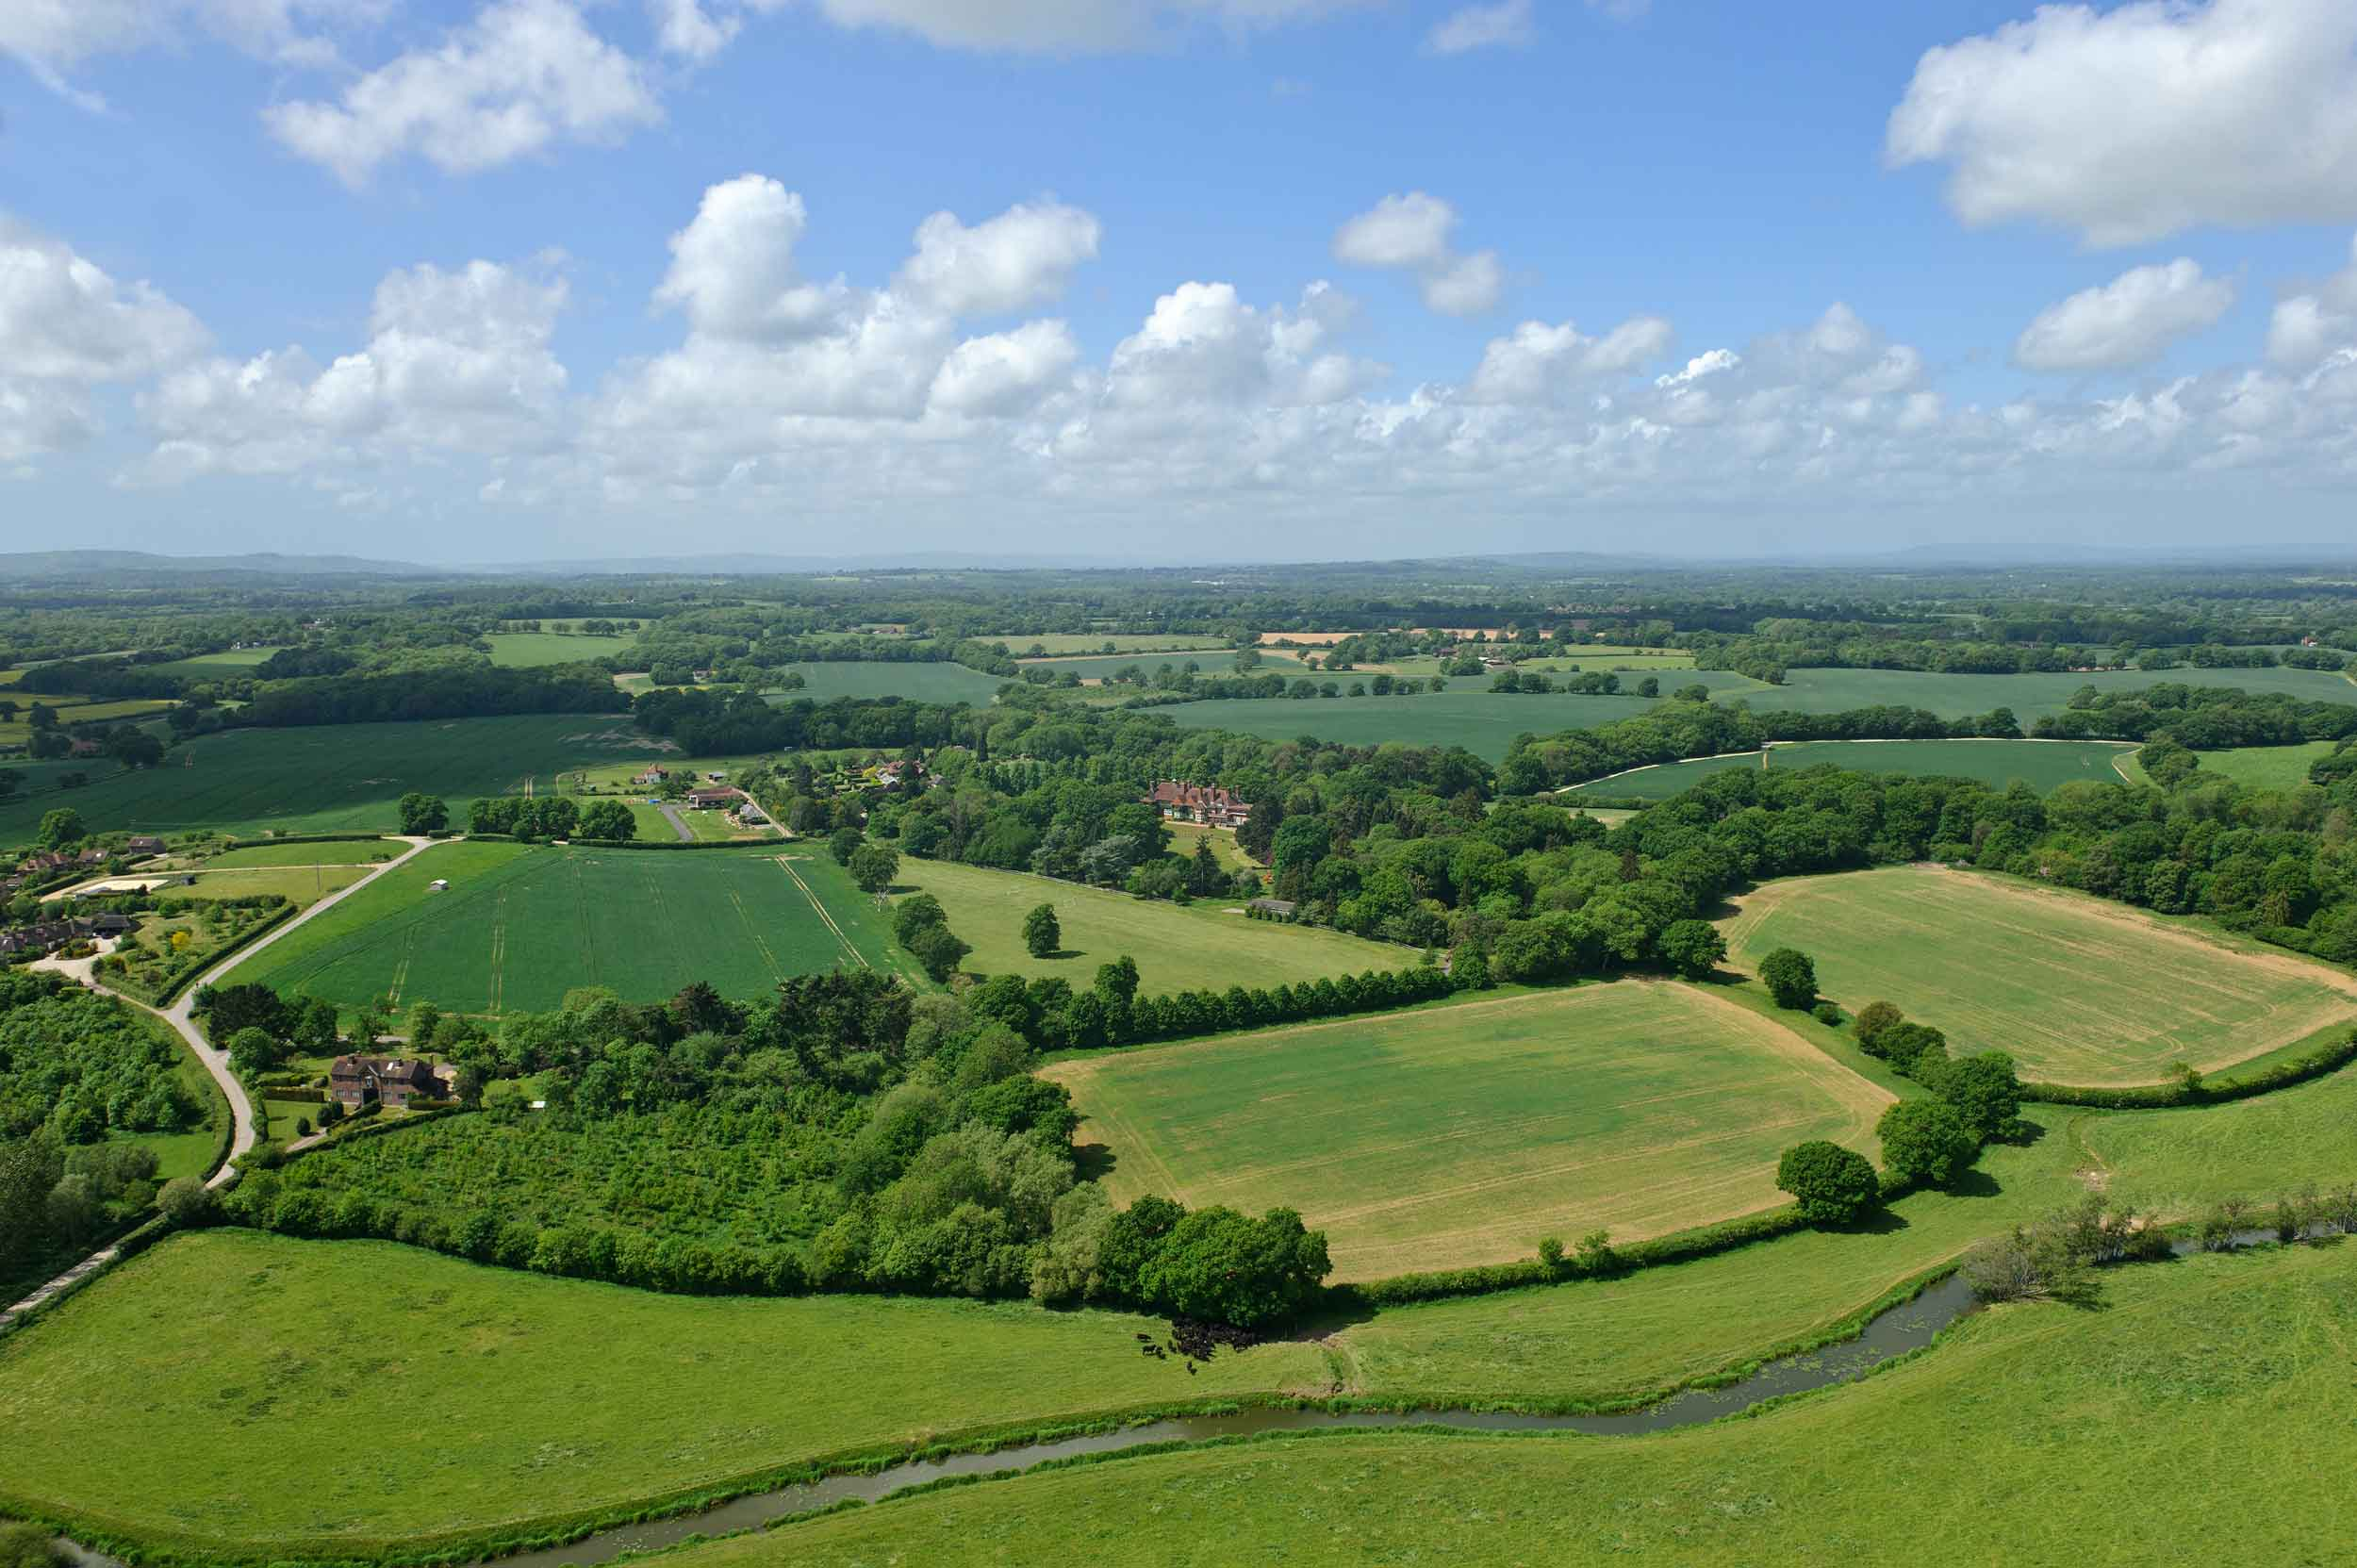 A scene of pastoral splendor: The rolling meadows and verdant woodlands of West Sussex provide a picture-postcard setting for this refuge in the English countryside.